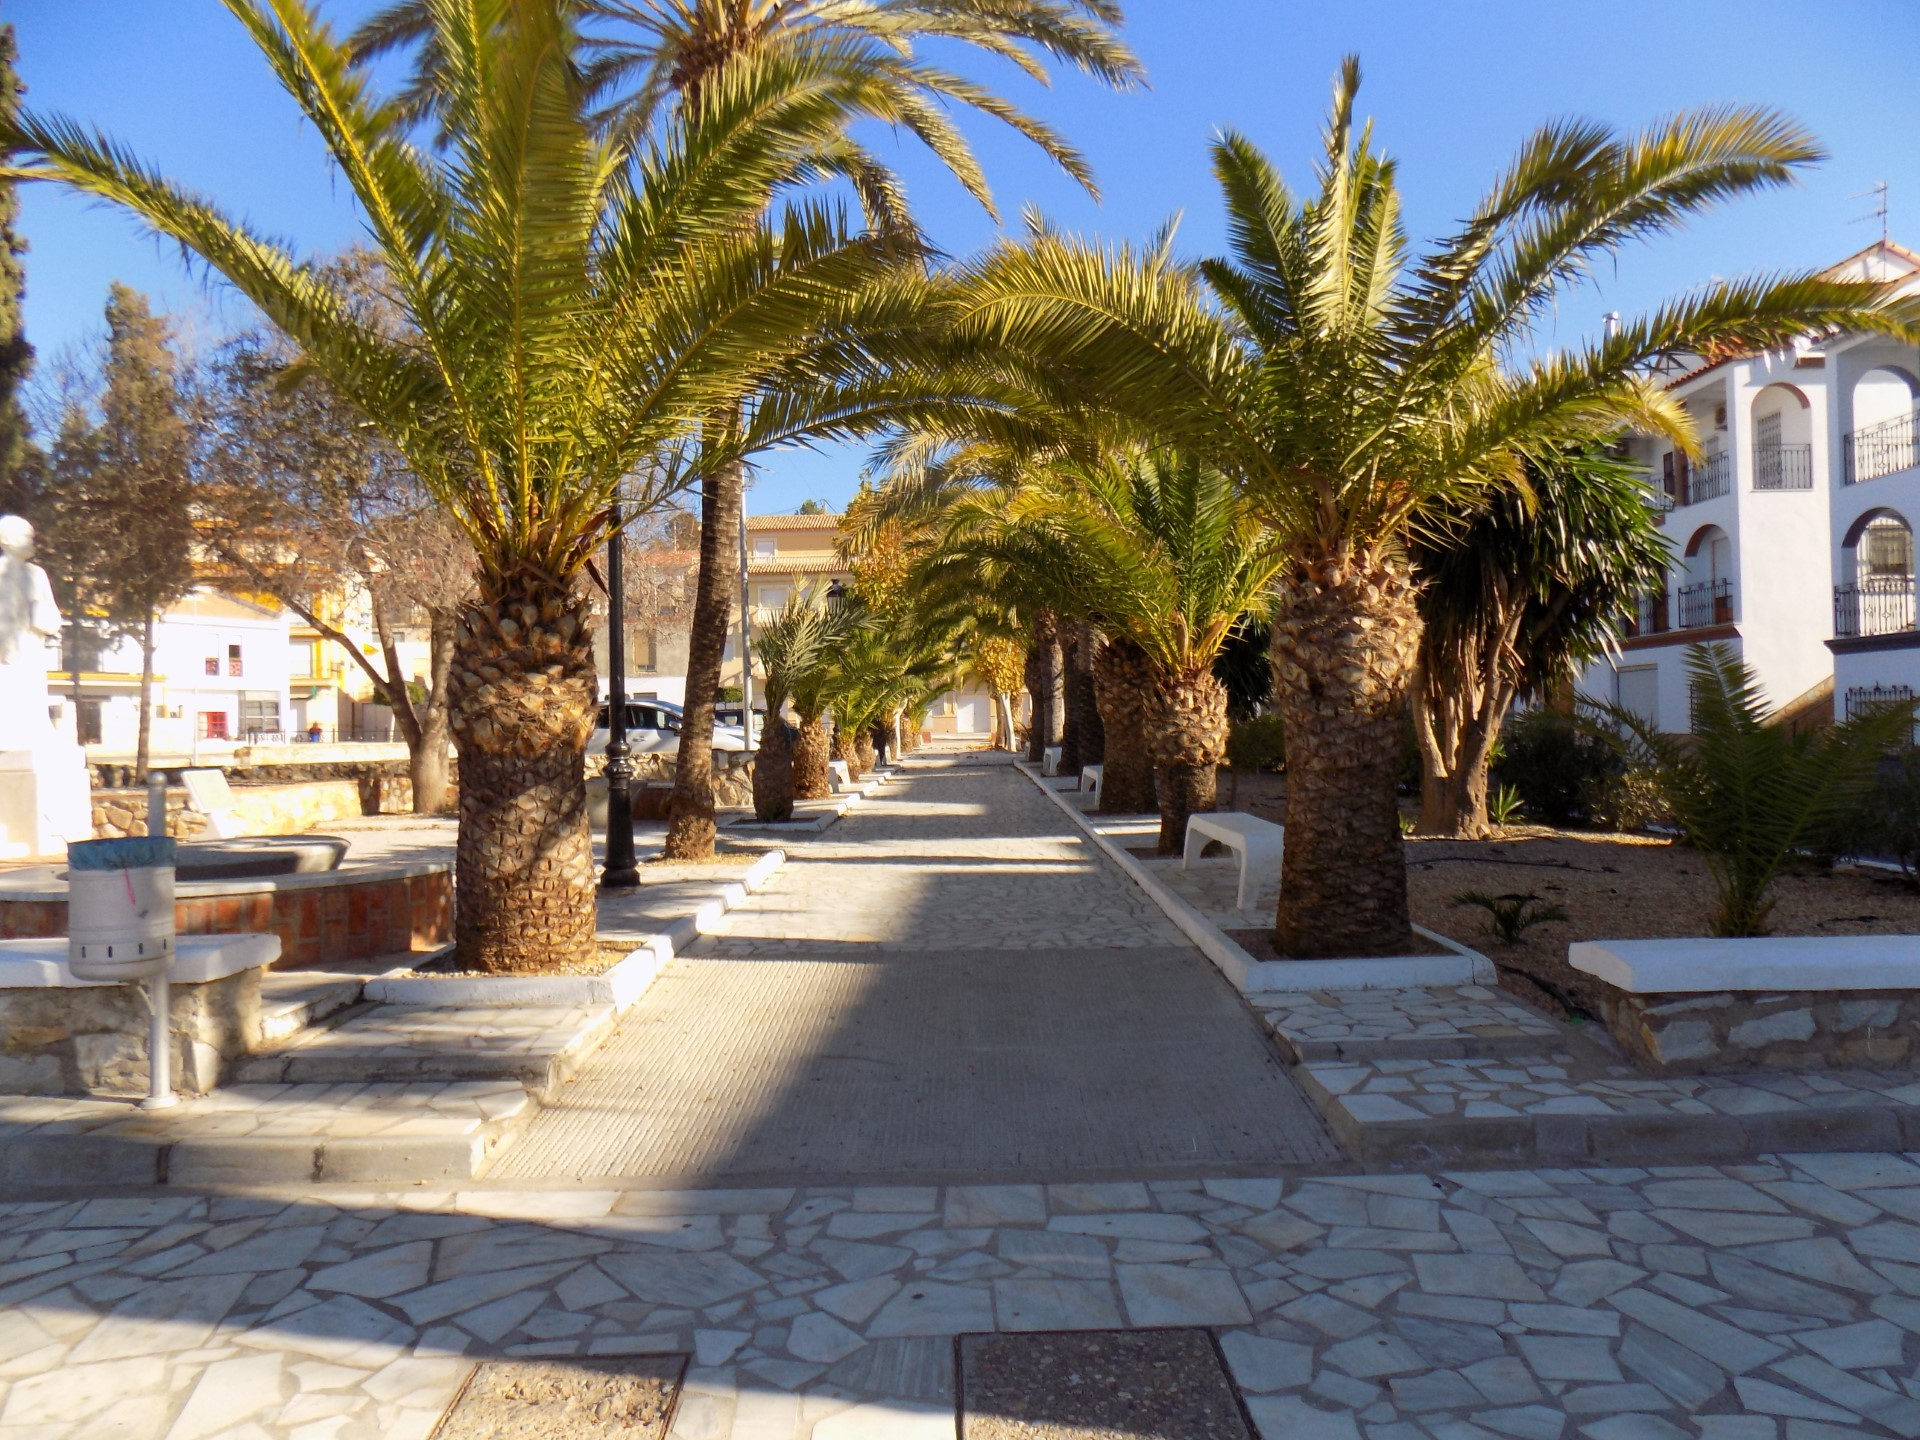 Plaza in Arboleas, Almeria